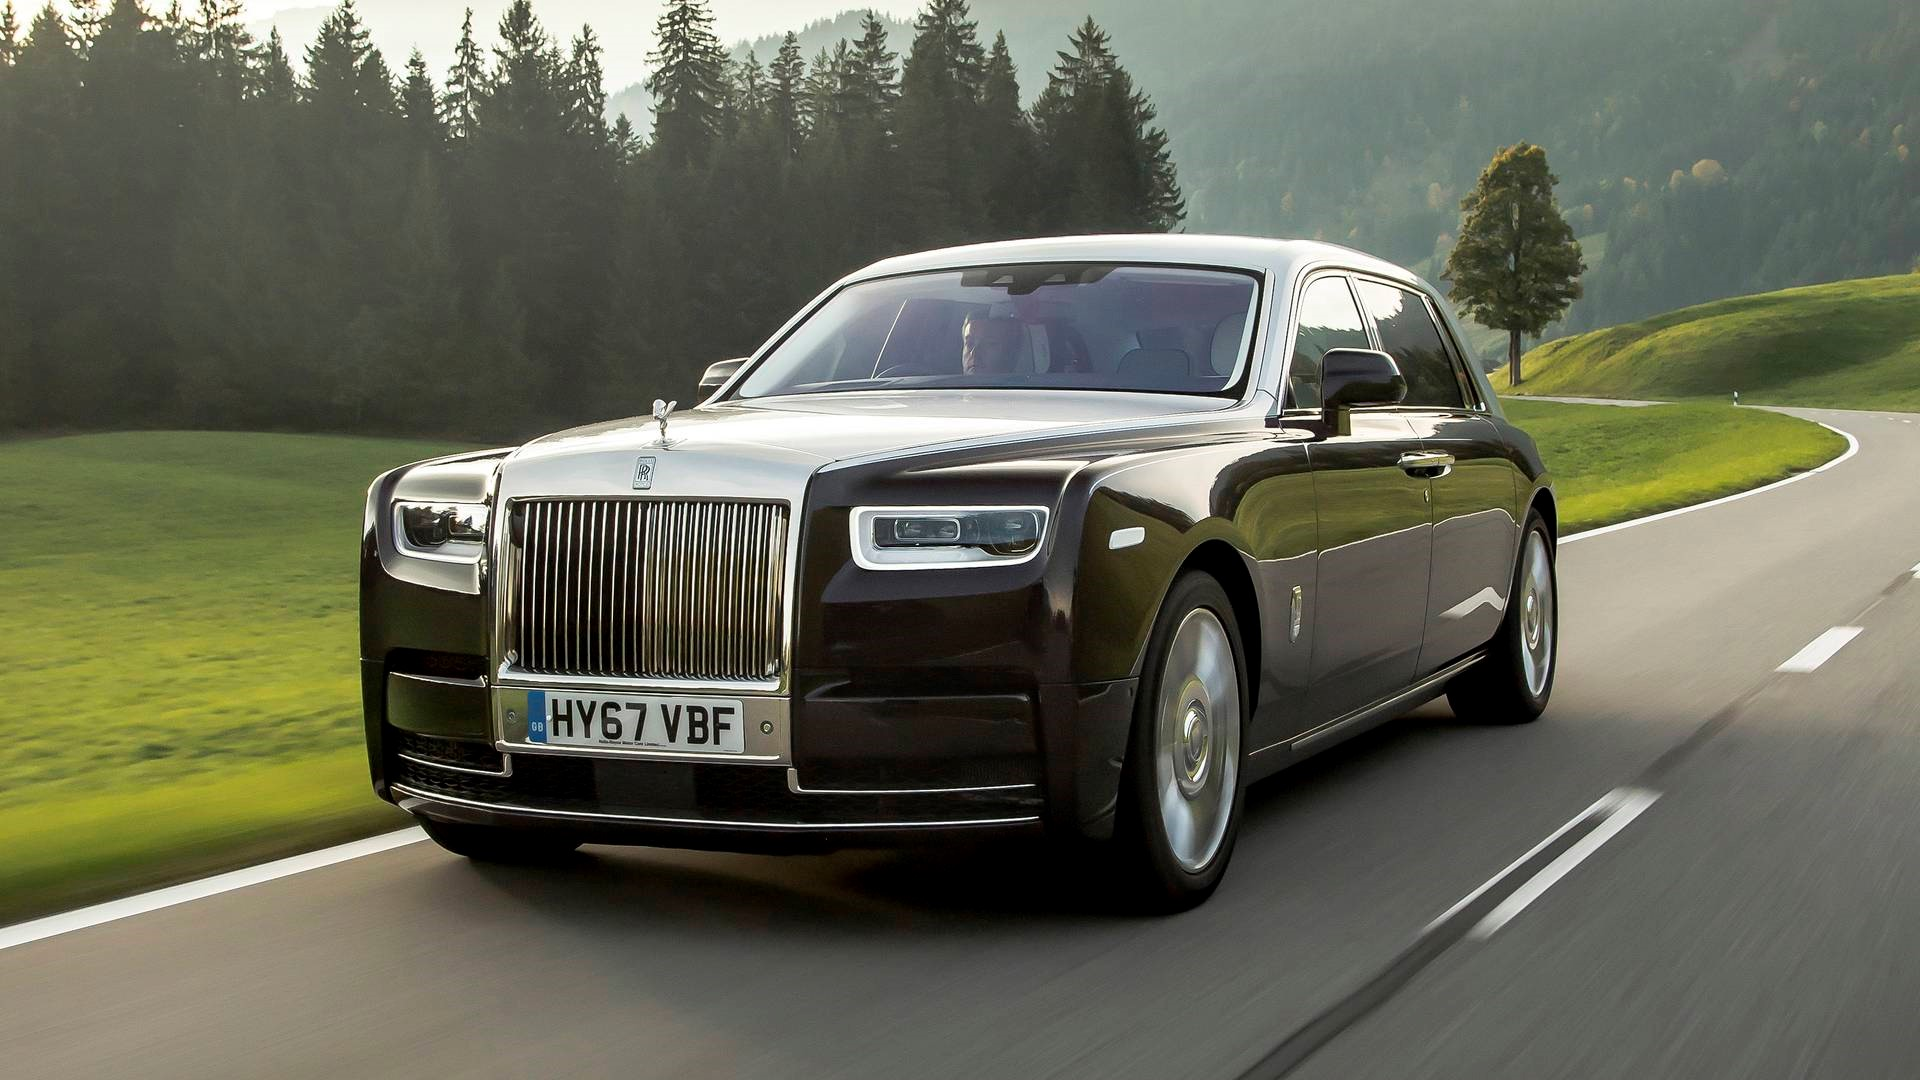 Rolls Royce models to be even more luxurious and super exclusive in the future